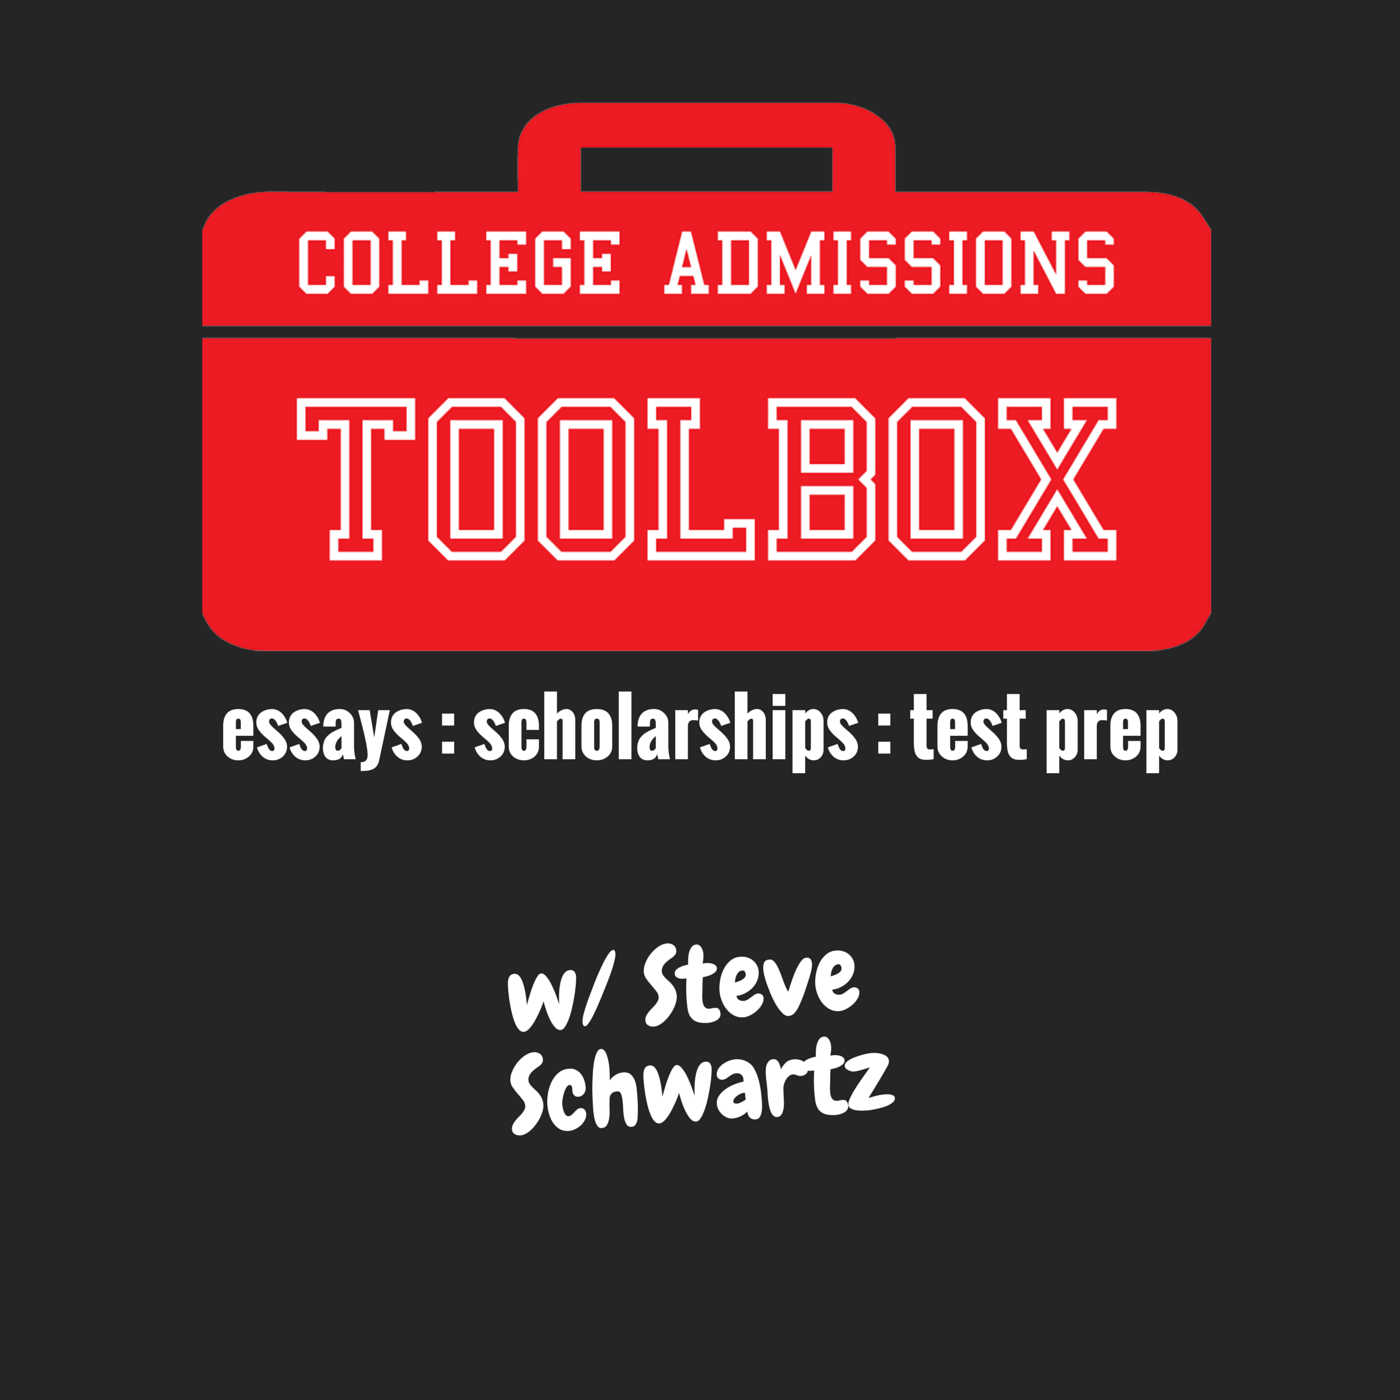 college admissions toolbox learn how to stand out and get in college admissions toolbox